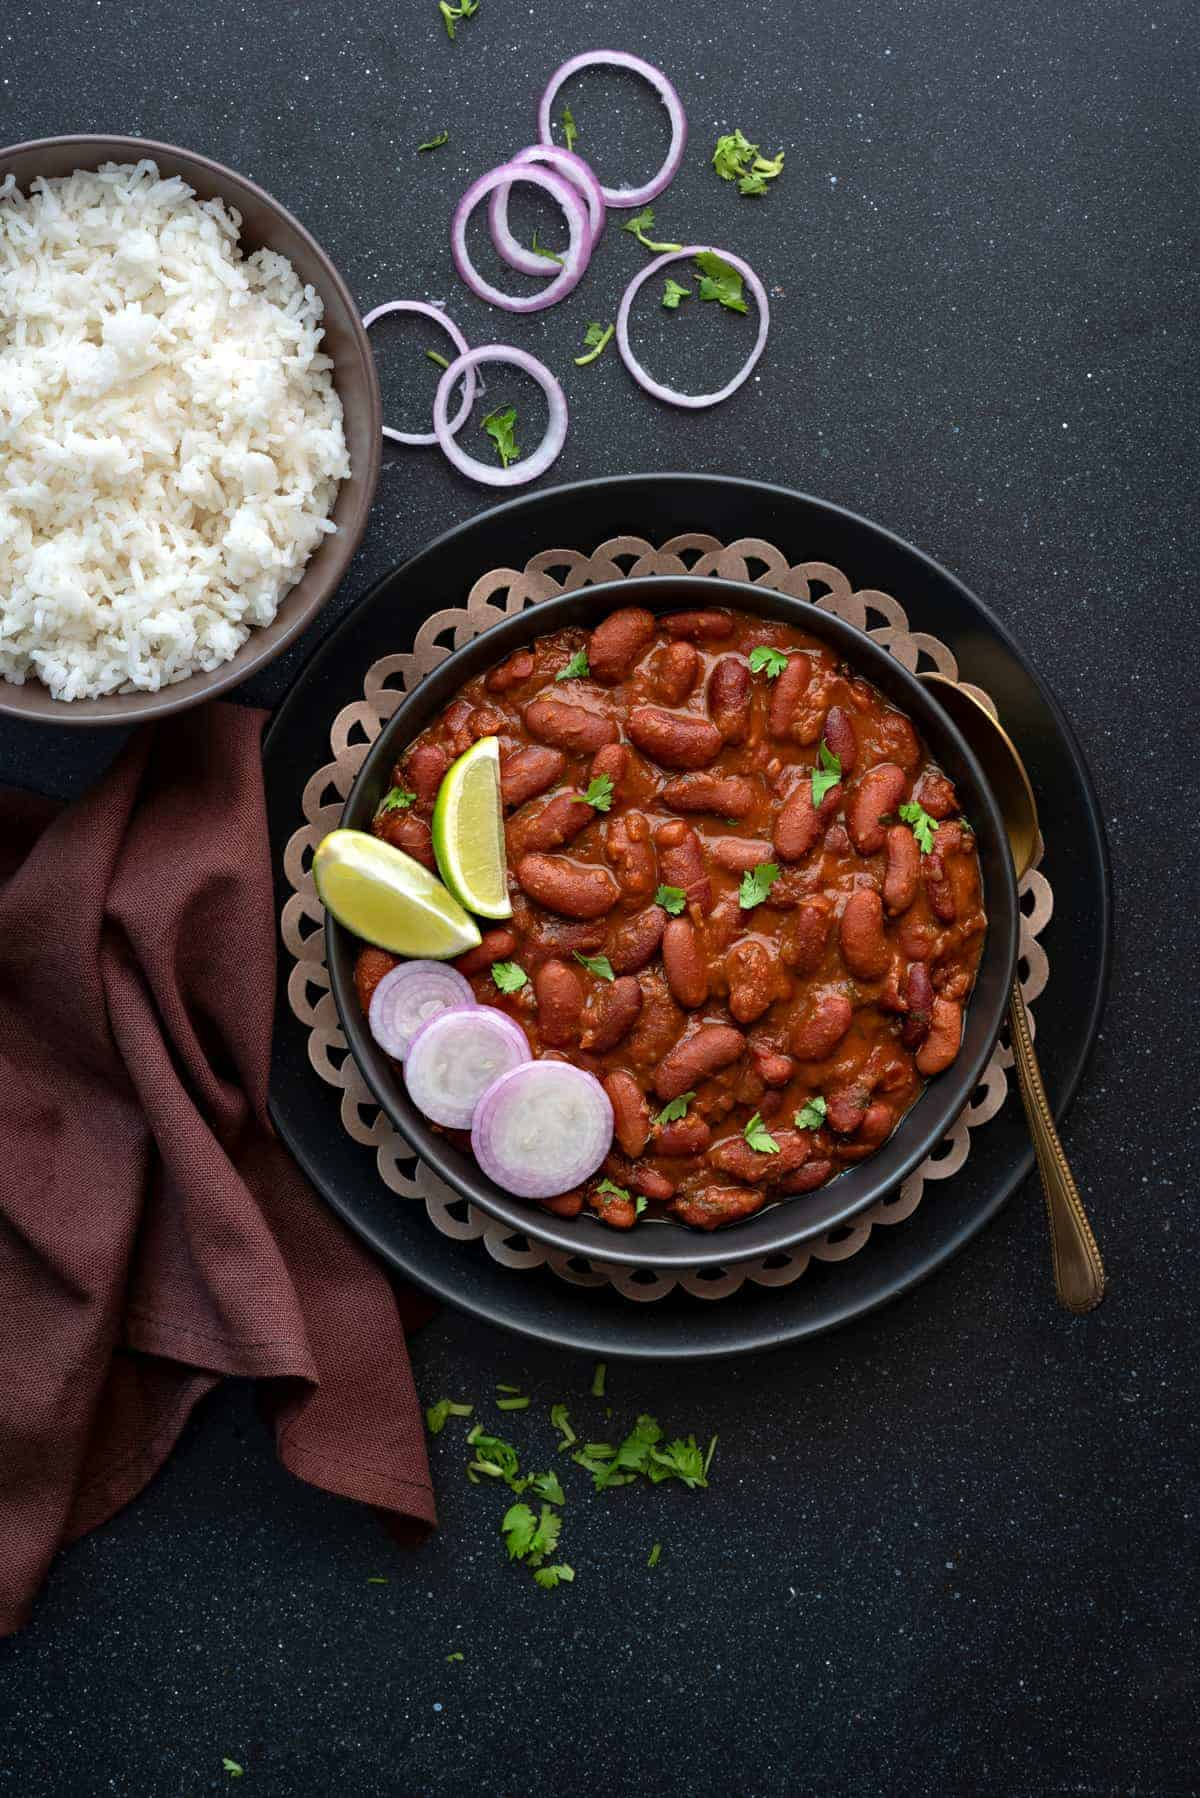 Red kidney beans curry on black plate with a spoon into it, bowl of rice on the side.